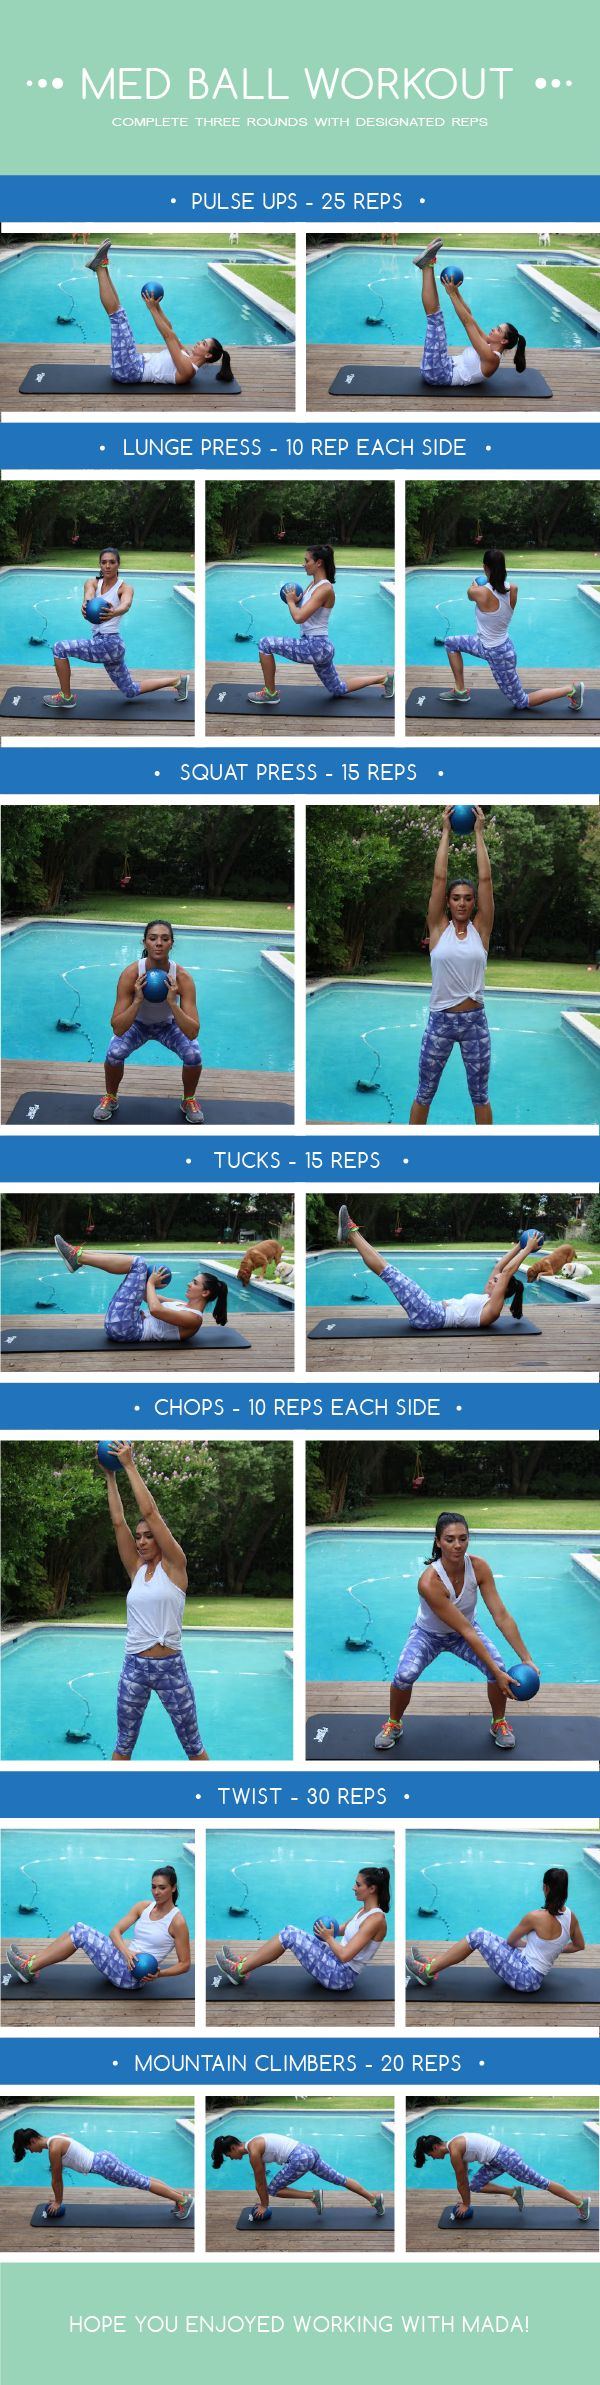 Full Body Med Ball Workout | The Defined Dish